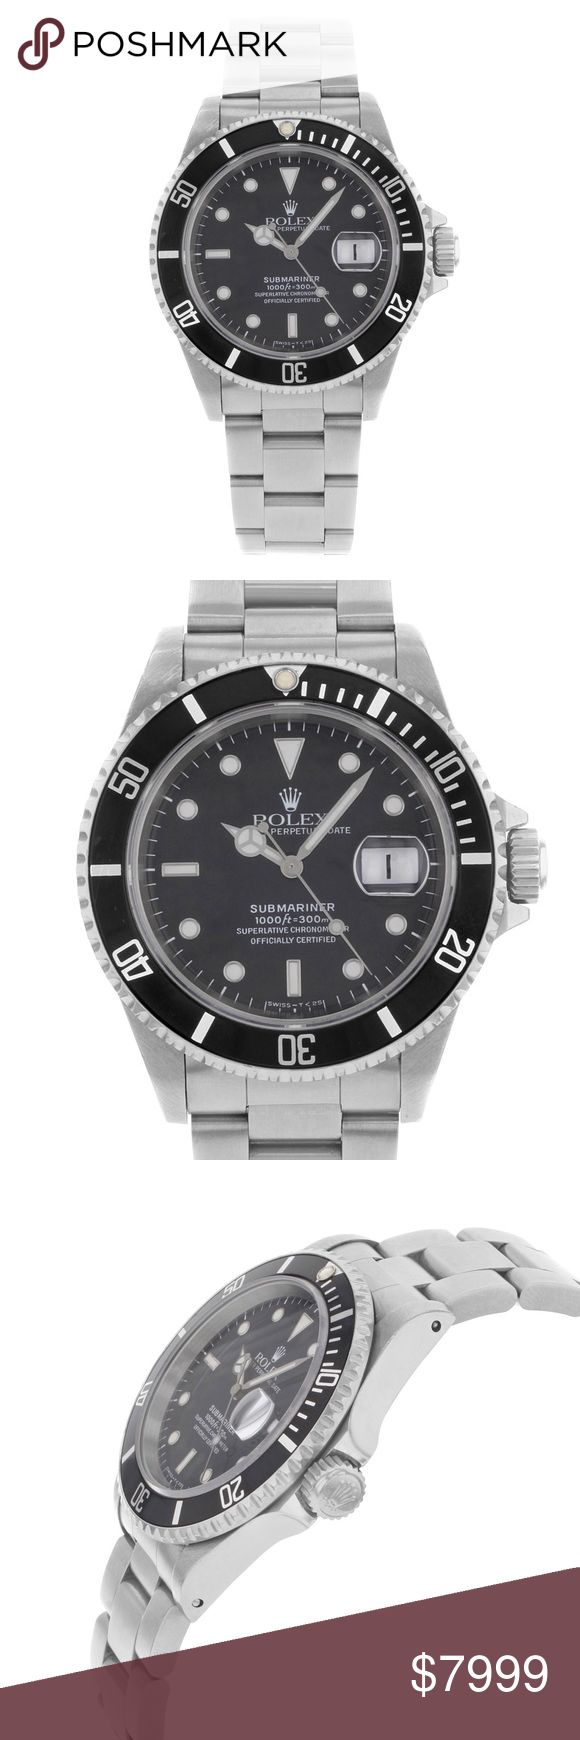 Rolex men's watch This pre-owned Rolex Submariner  16610  is a beautiful men's timepiece that is powered by an automatic movement which is cased in a stainless steel case. It has a round shape face, date dial and has hand sticks & dots style markers. It is completed with a stainless steel band that opens and closes with a fold over clasp. This watch was produced in 1997. This watch comes with a gift box and no original papers are supplied. Six months warranty on movement.  Wrist fit7.5 inch…